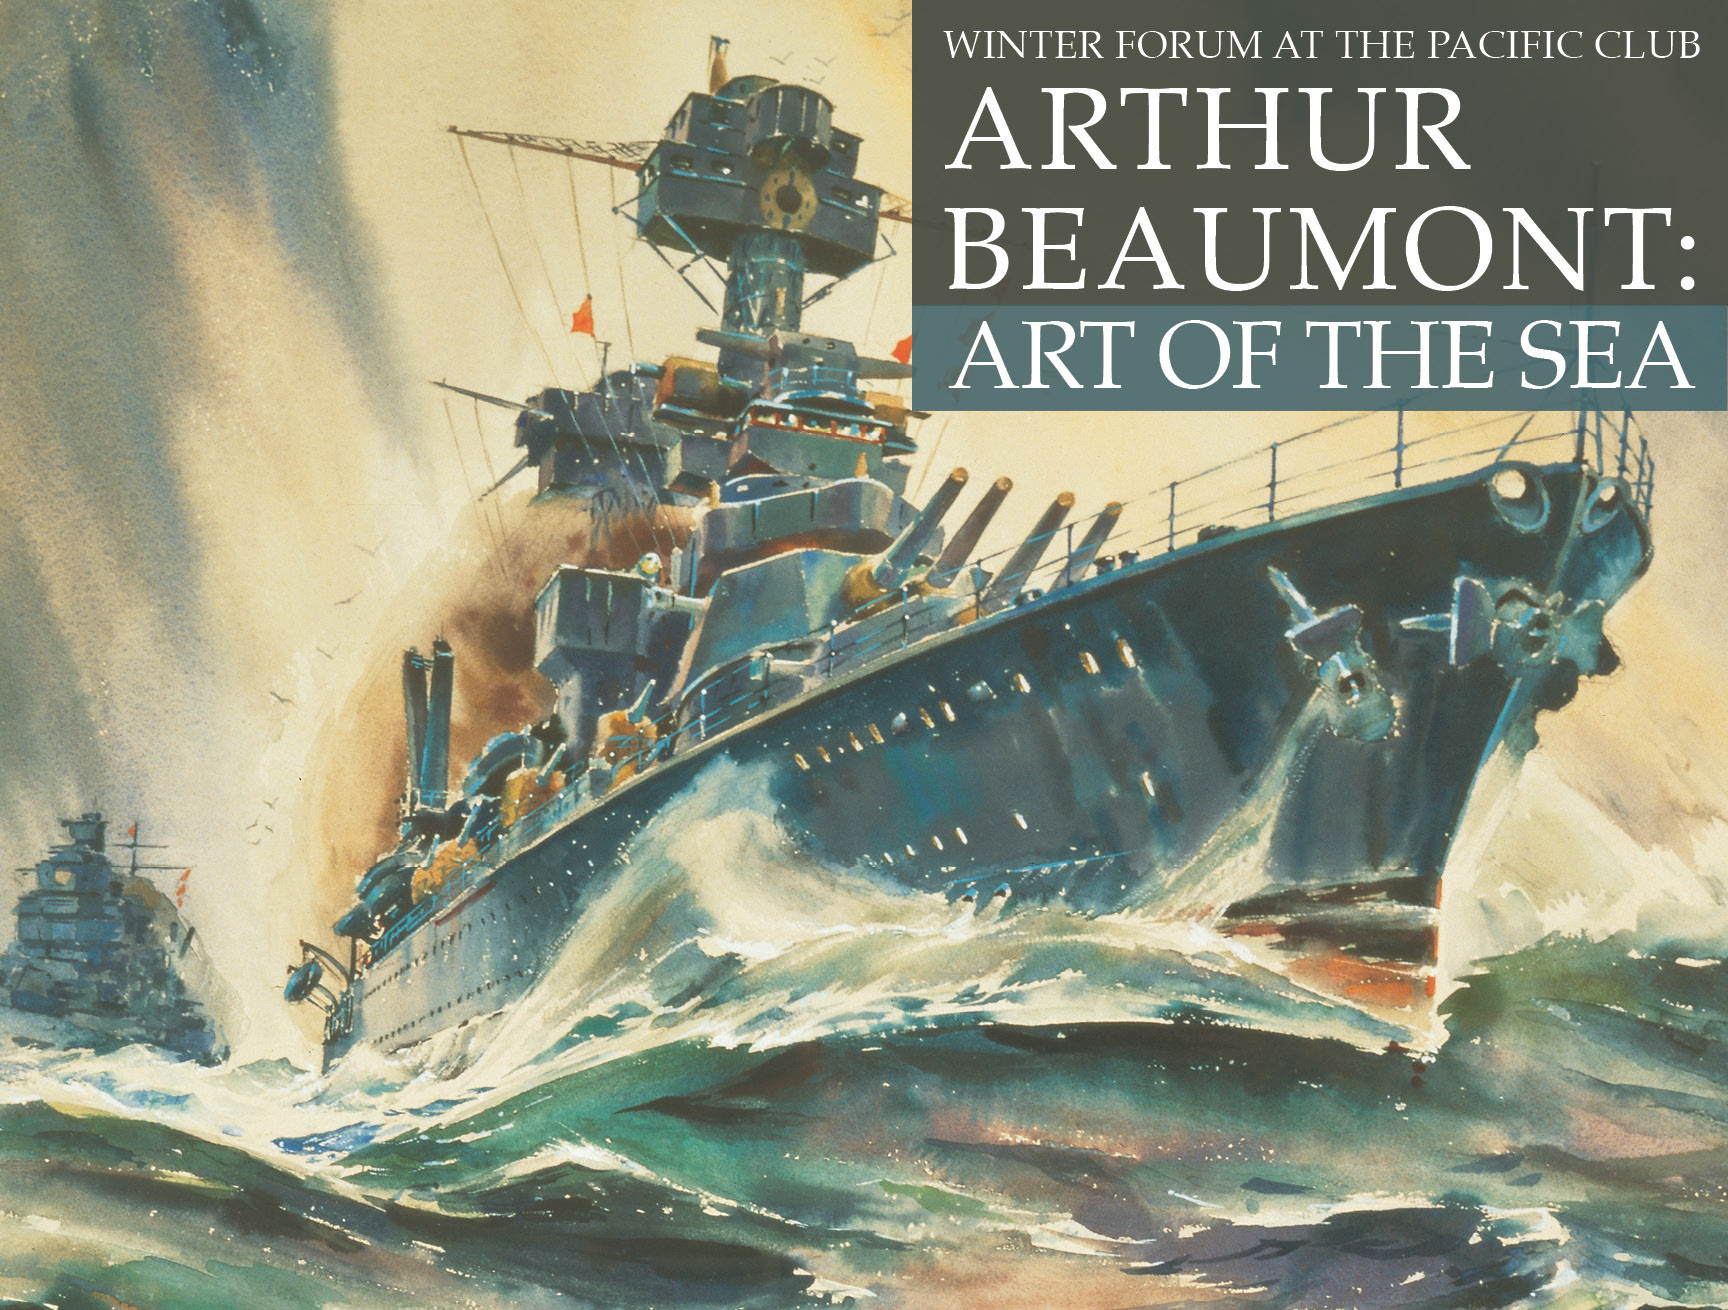 Arthur Beaumont: Art of The Sea, Pacific Art Foundation Event